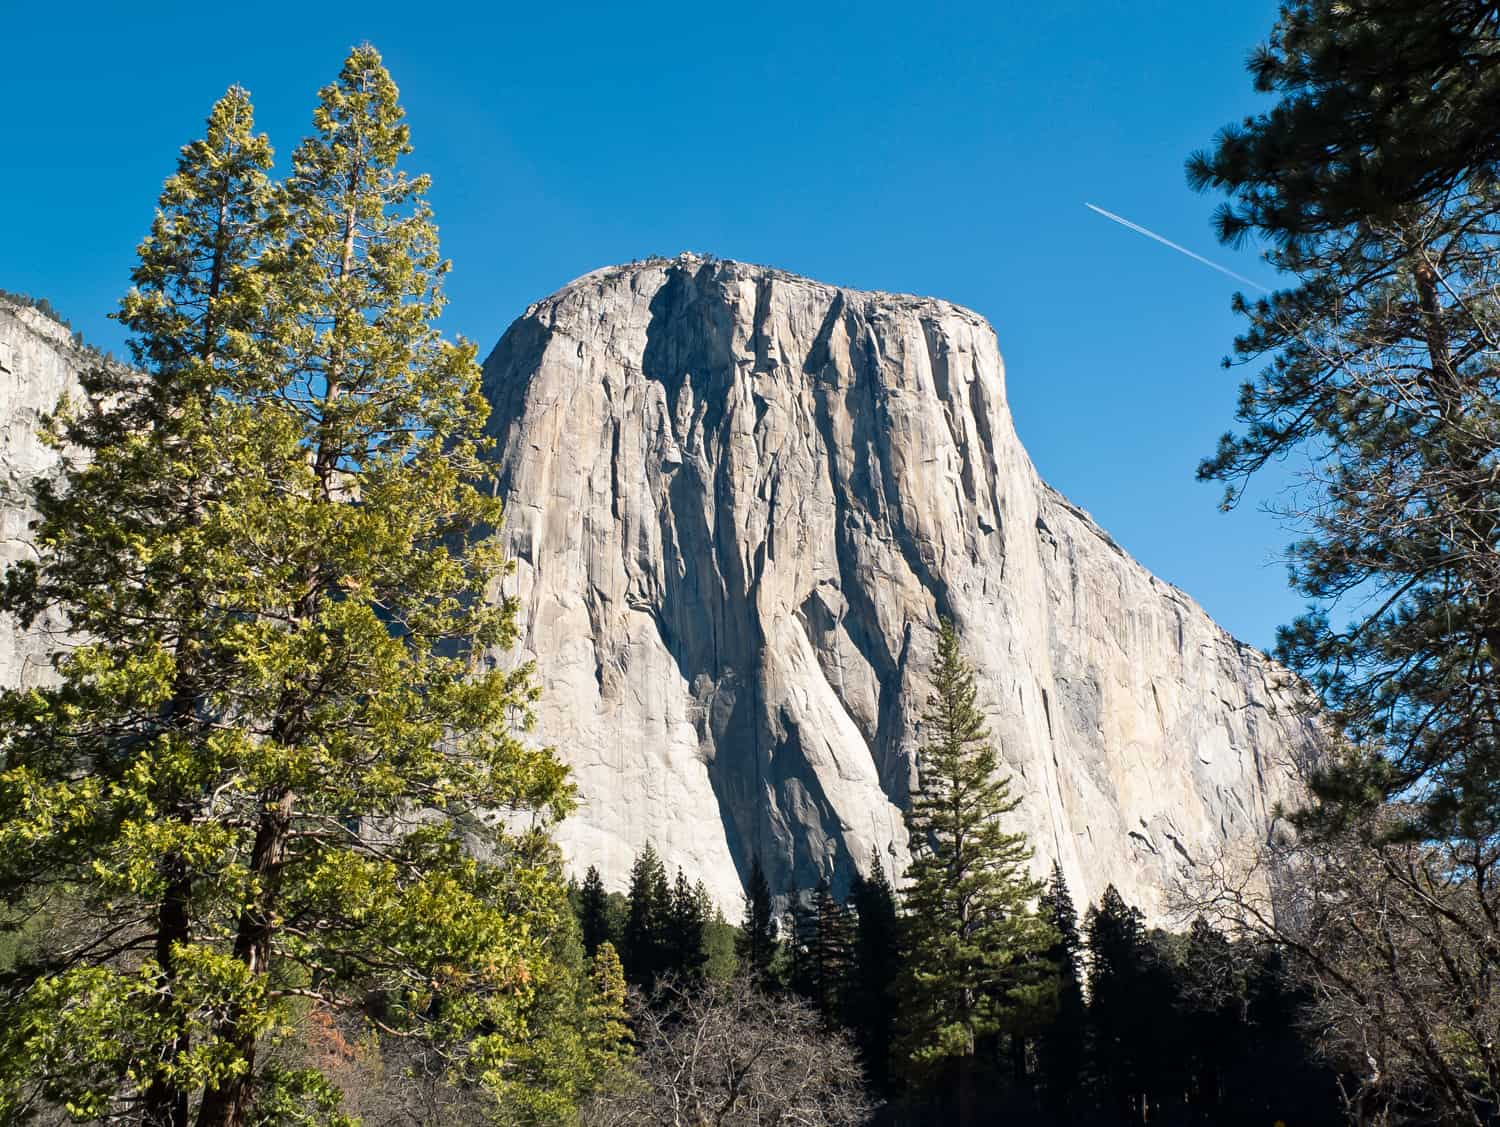 El Capitán in the Yosemite National Park valley.